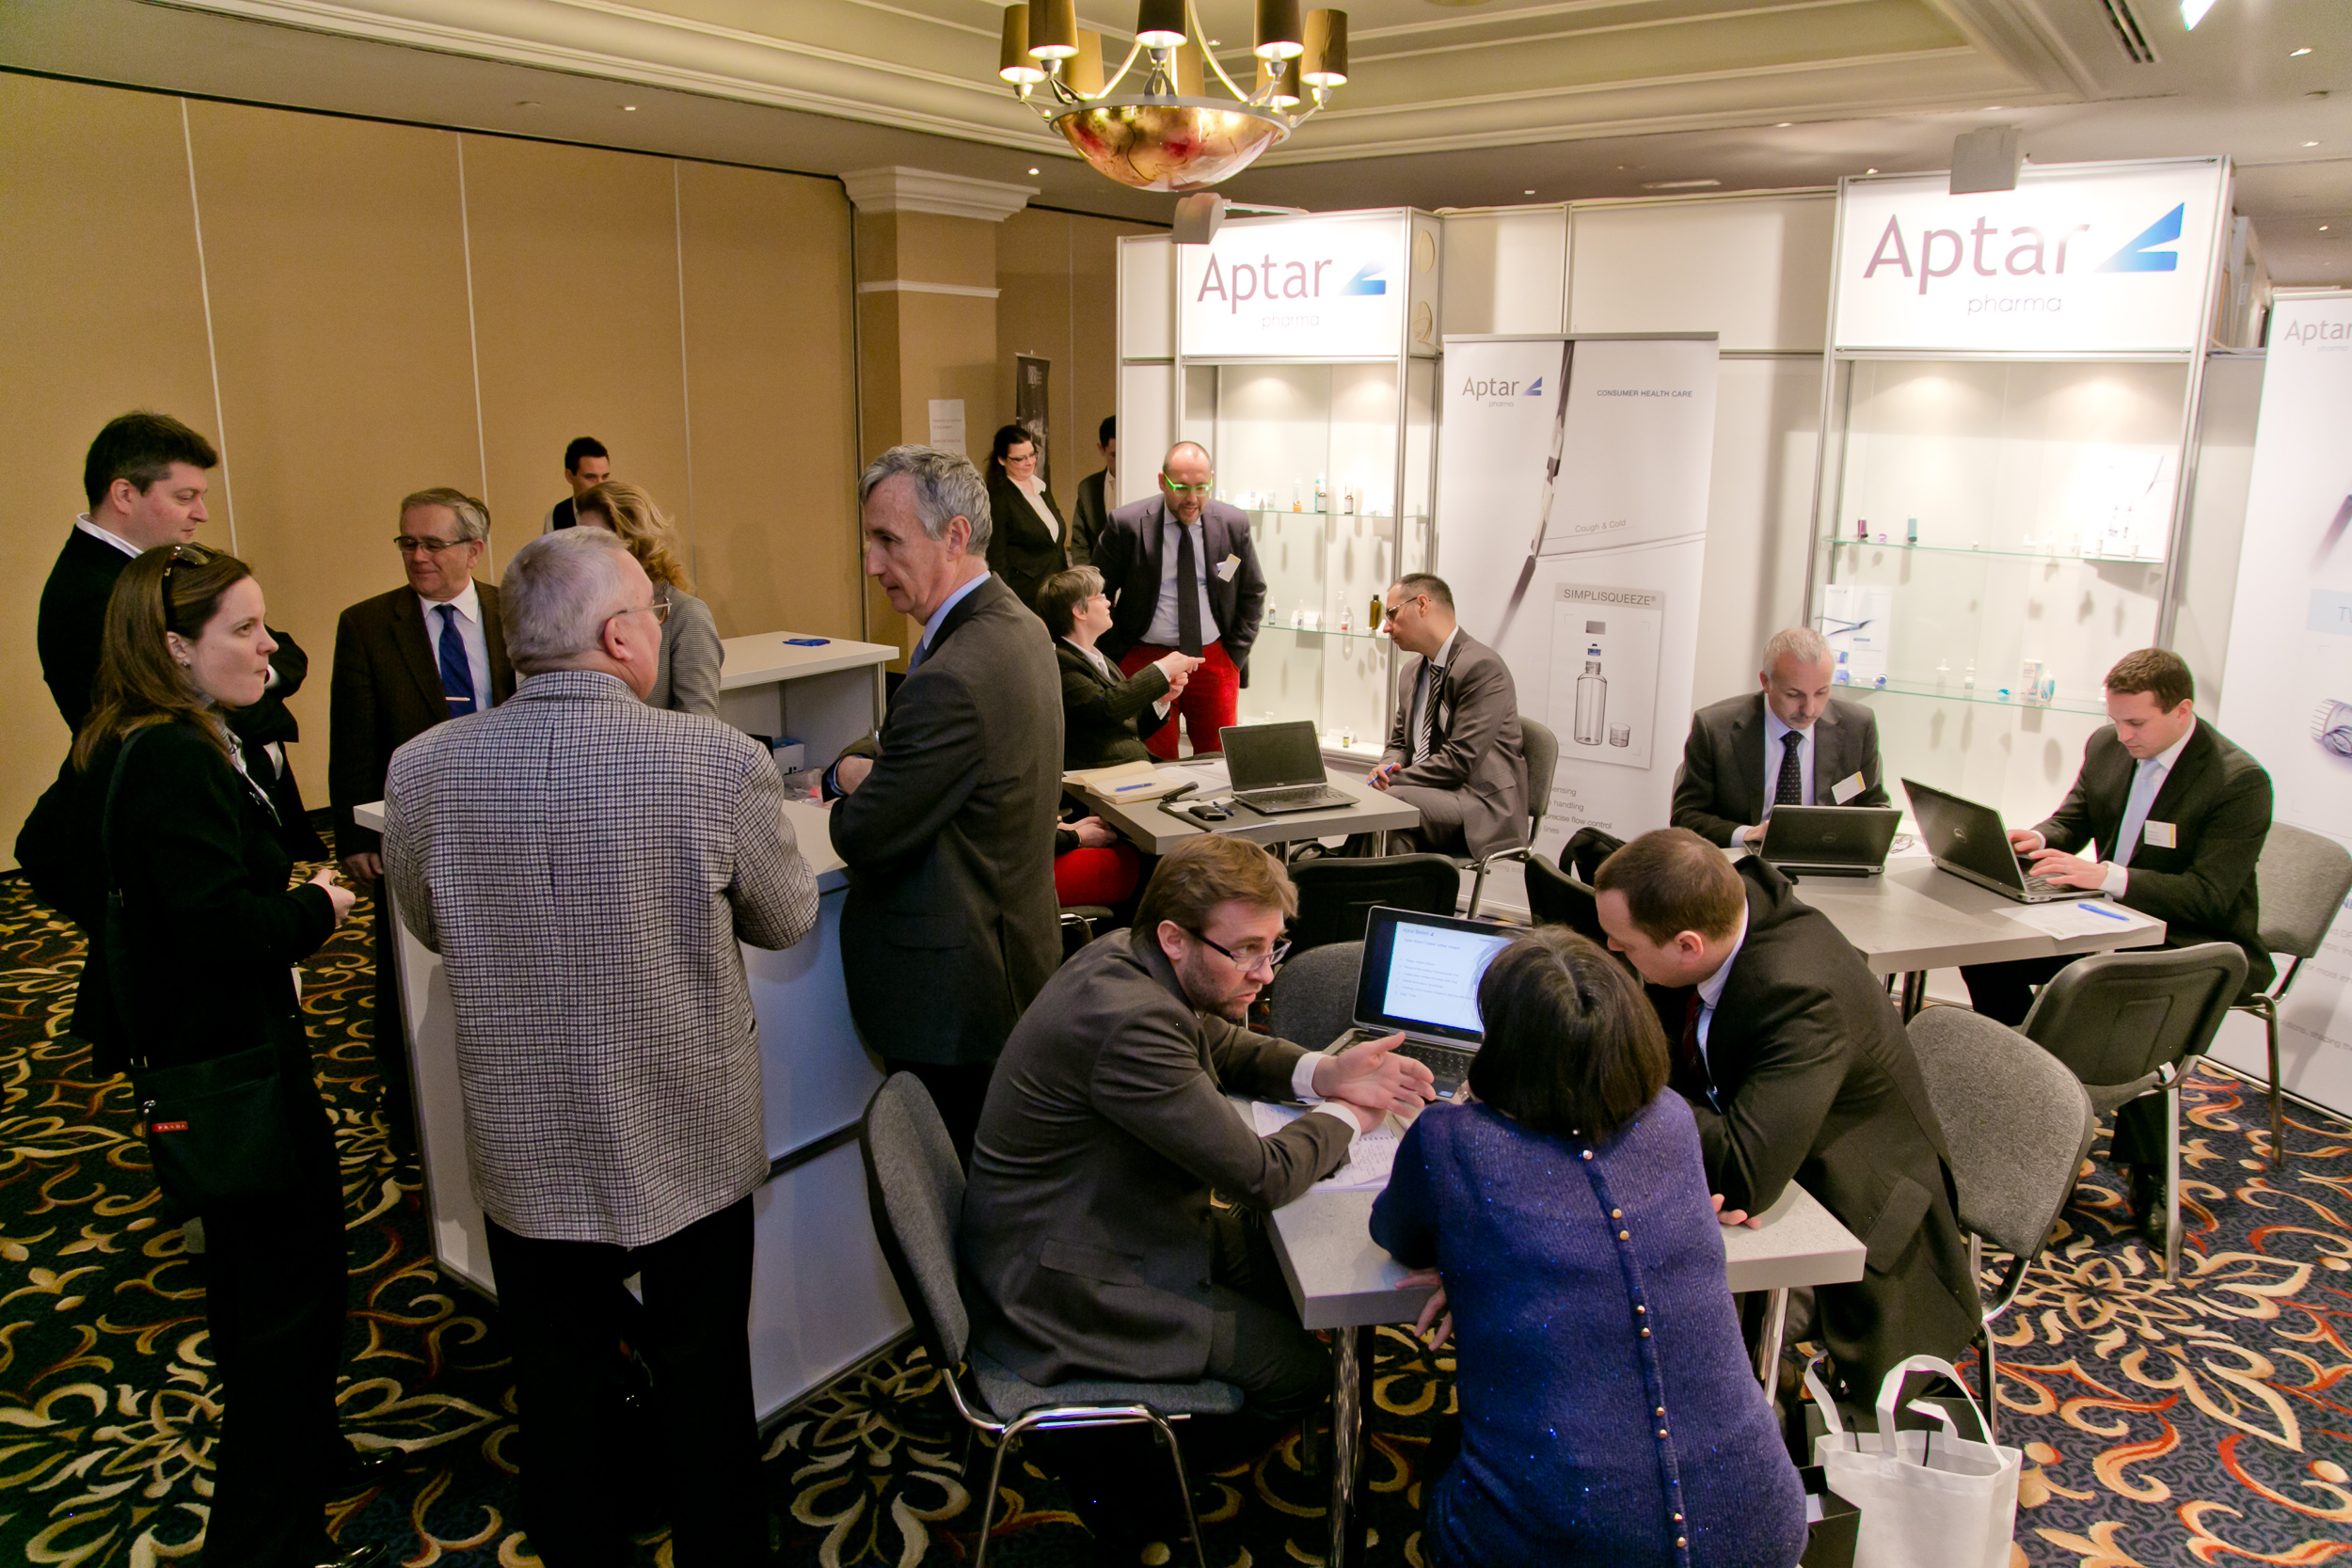 One-to-one meetings with Aptar Pharma at PHARM Connect 2015